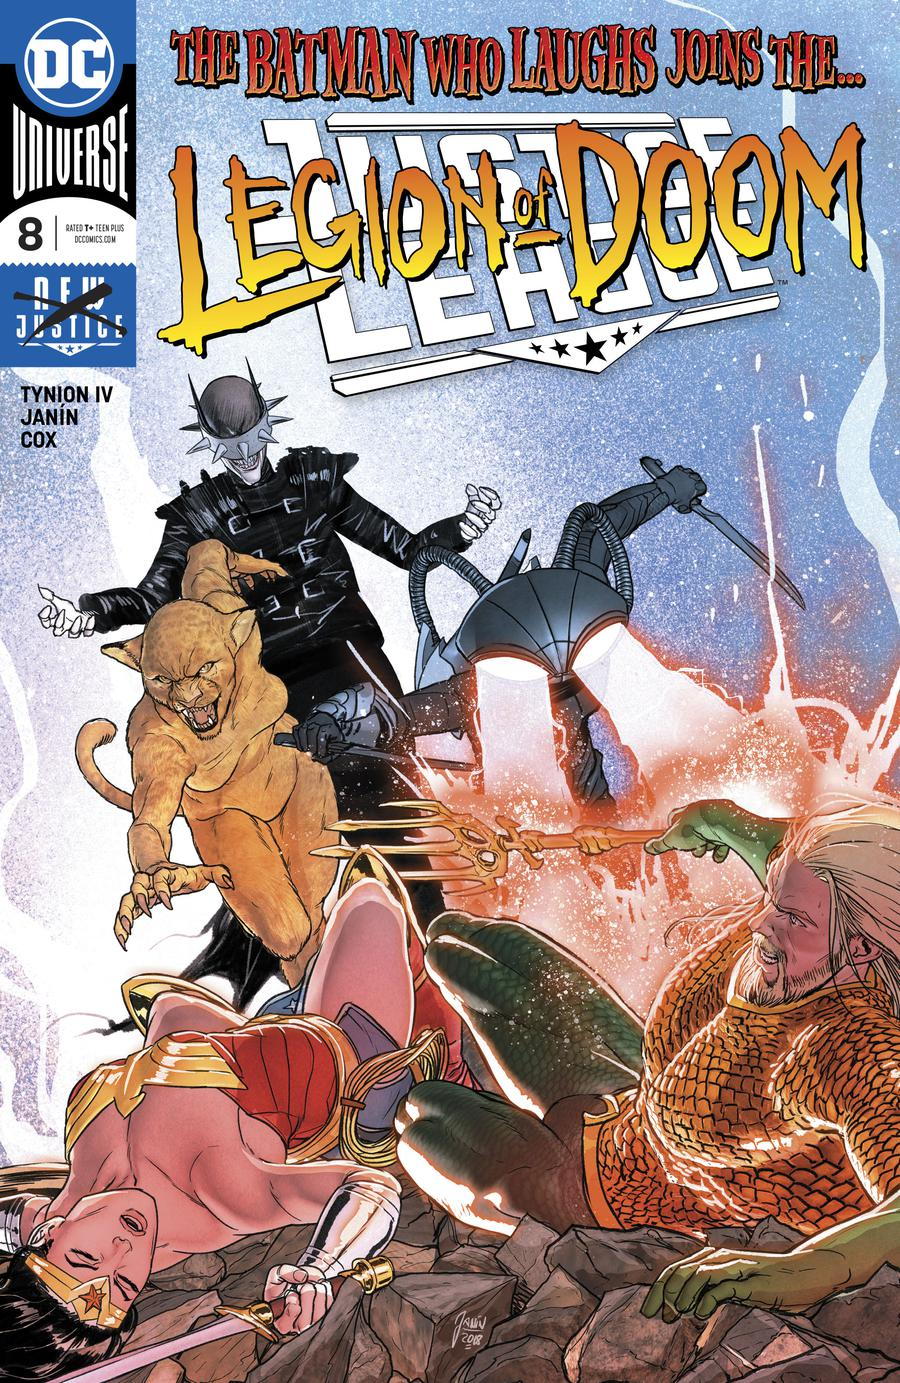 Justice League Vol 4 #8 Cover A Regular Mikel Janin Cover